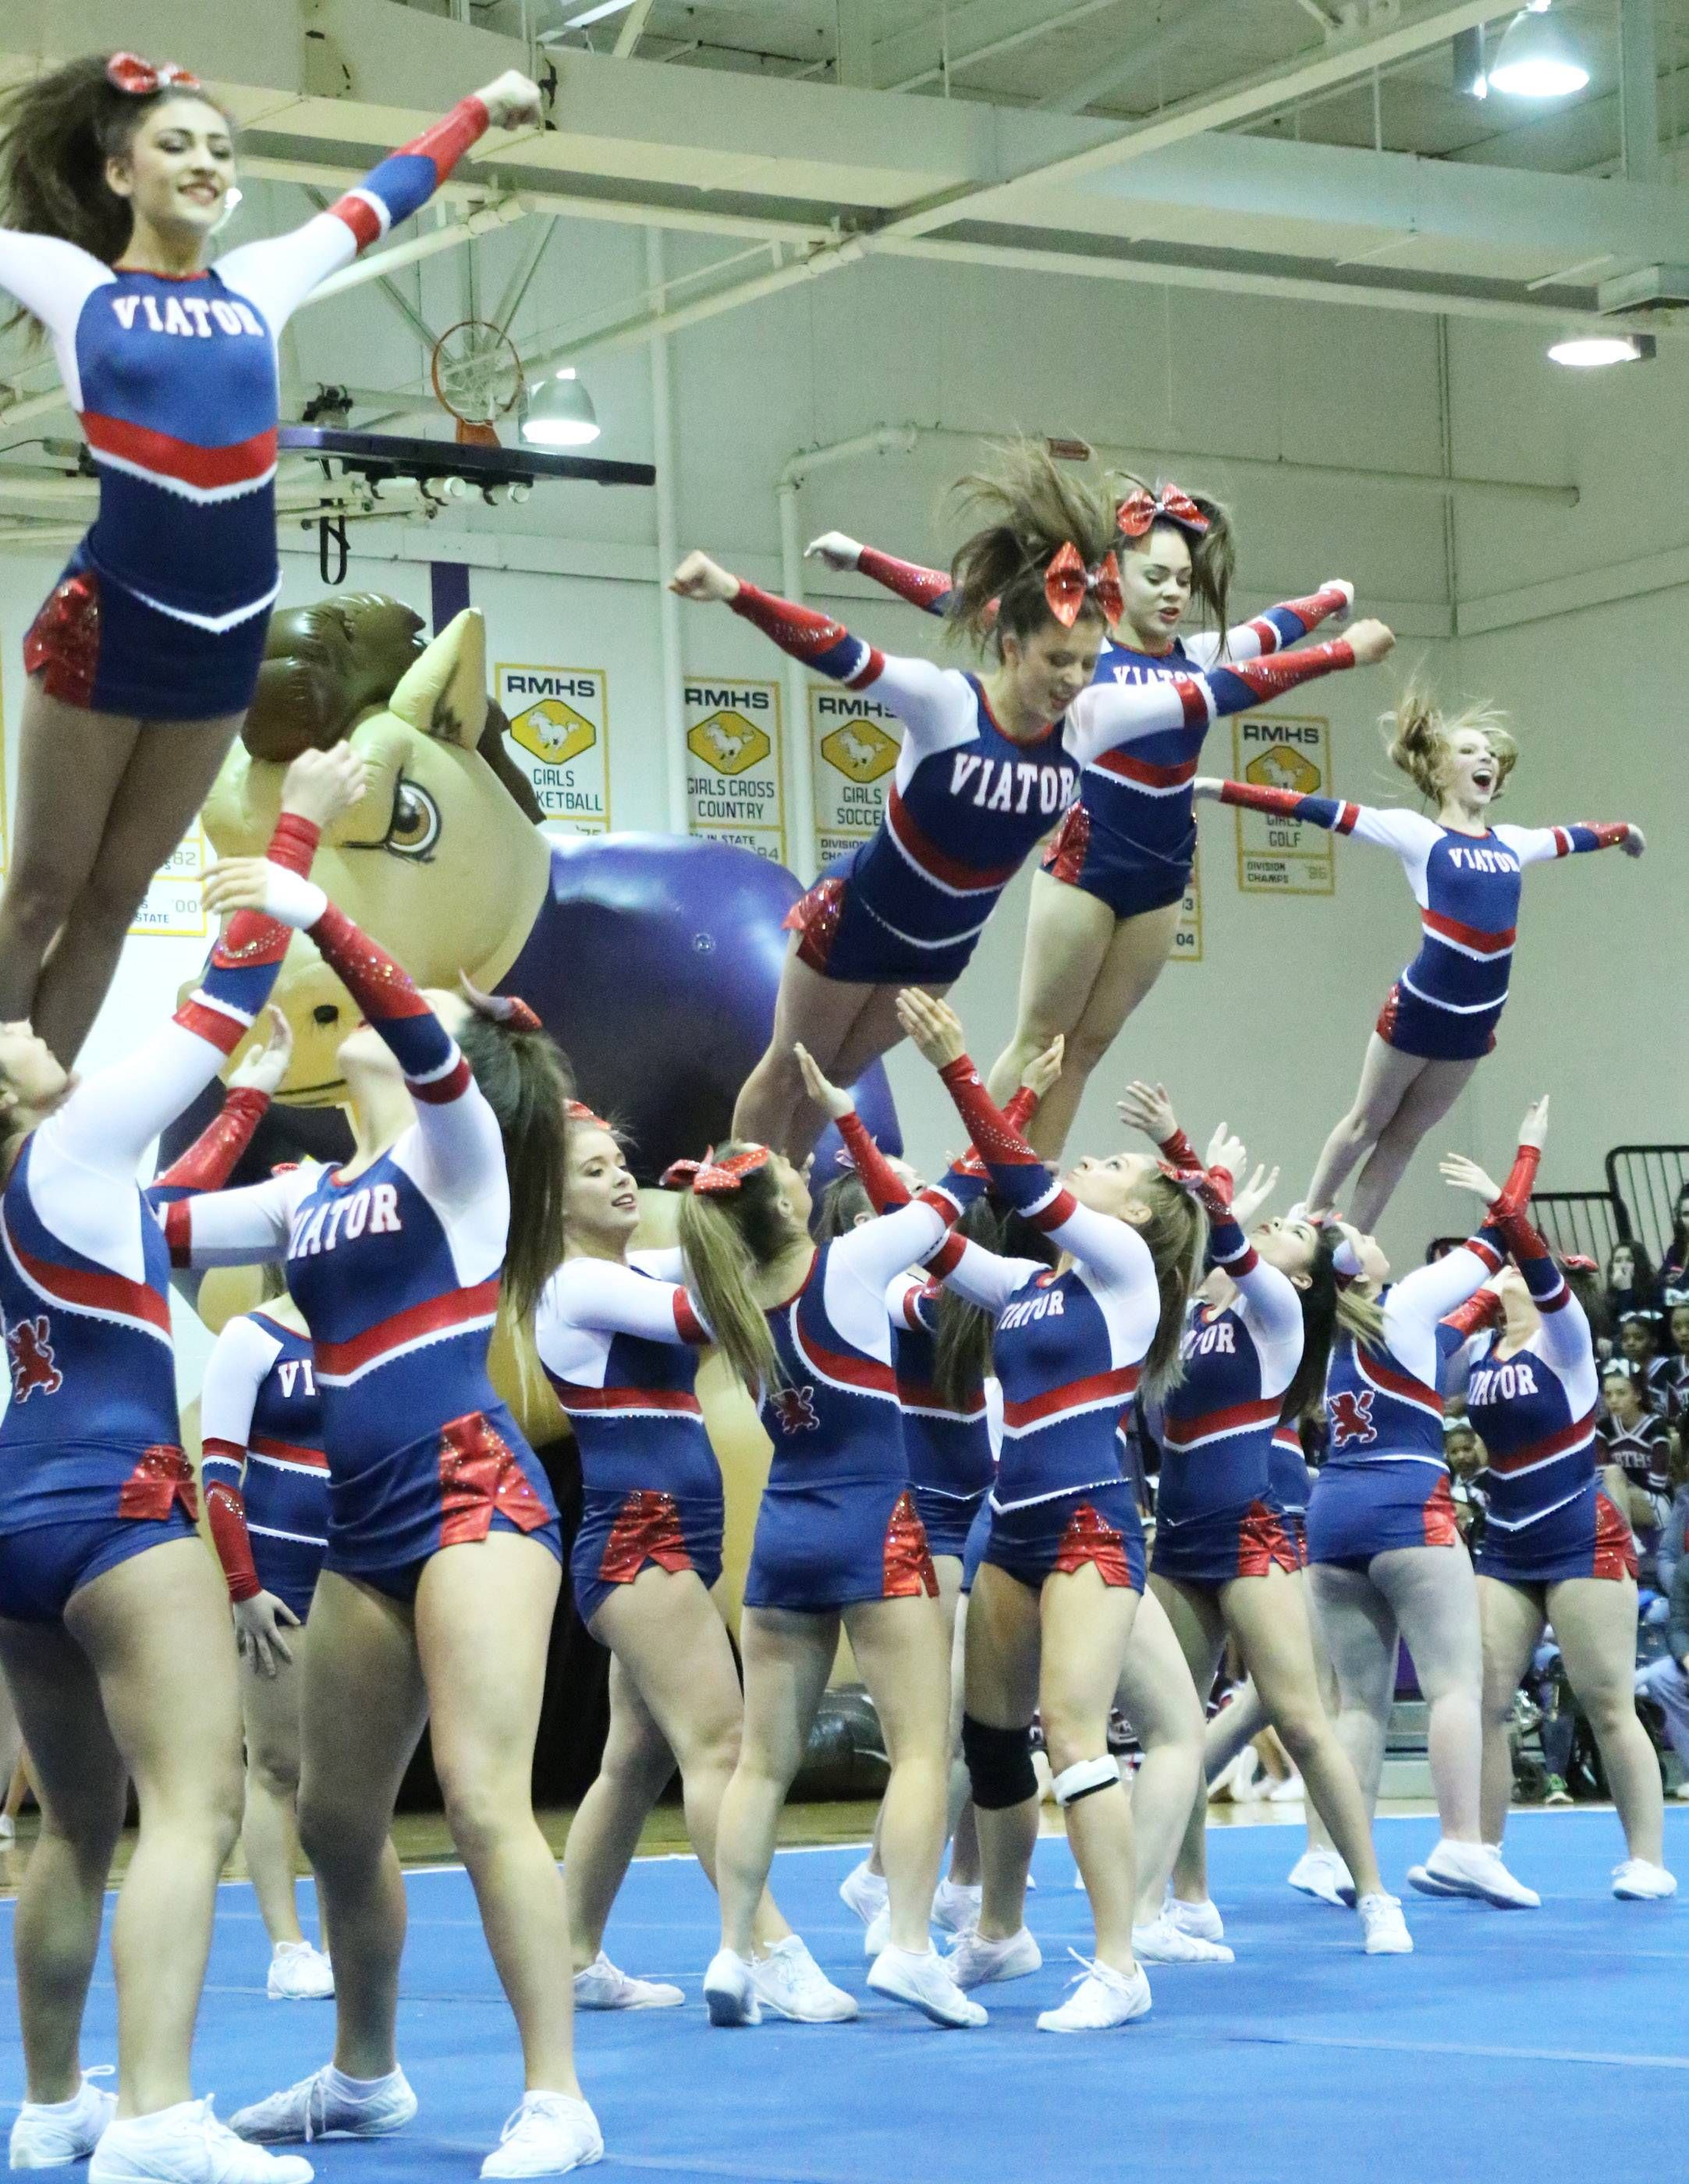 Images Ihsa Cheer Sectional Rolling Meadows Rolling Meadows Cheerleading Squad Cheerleading